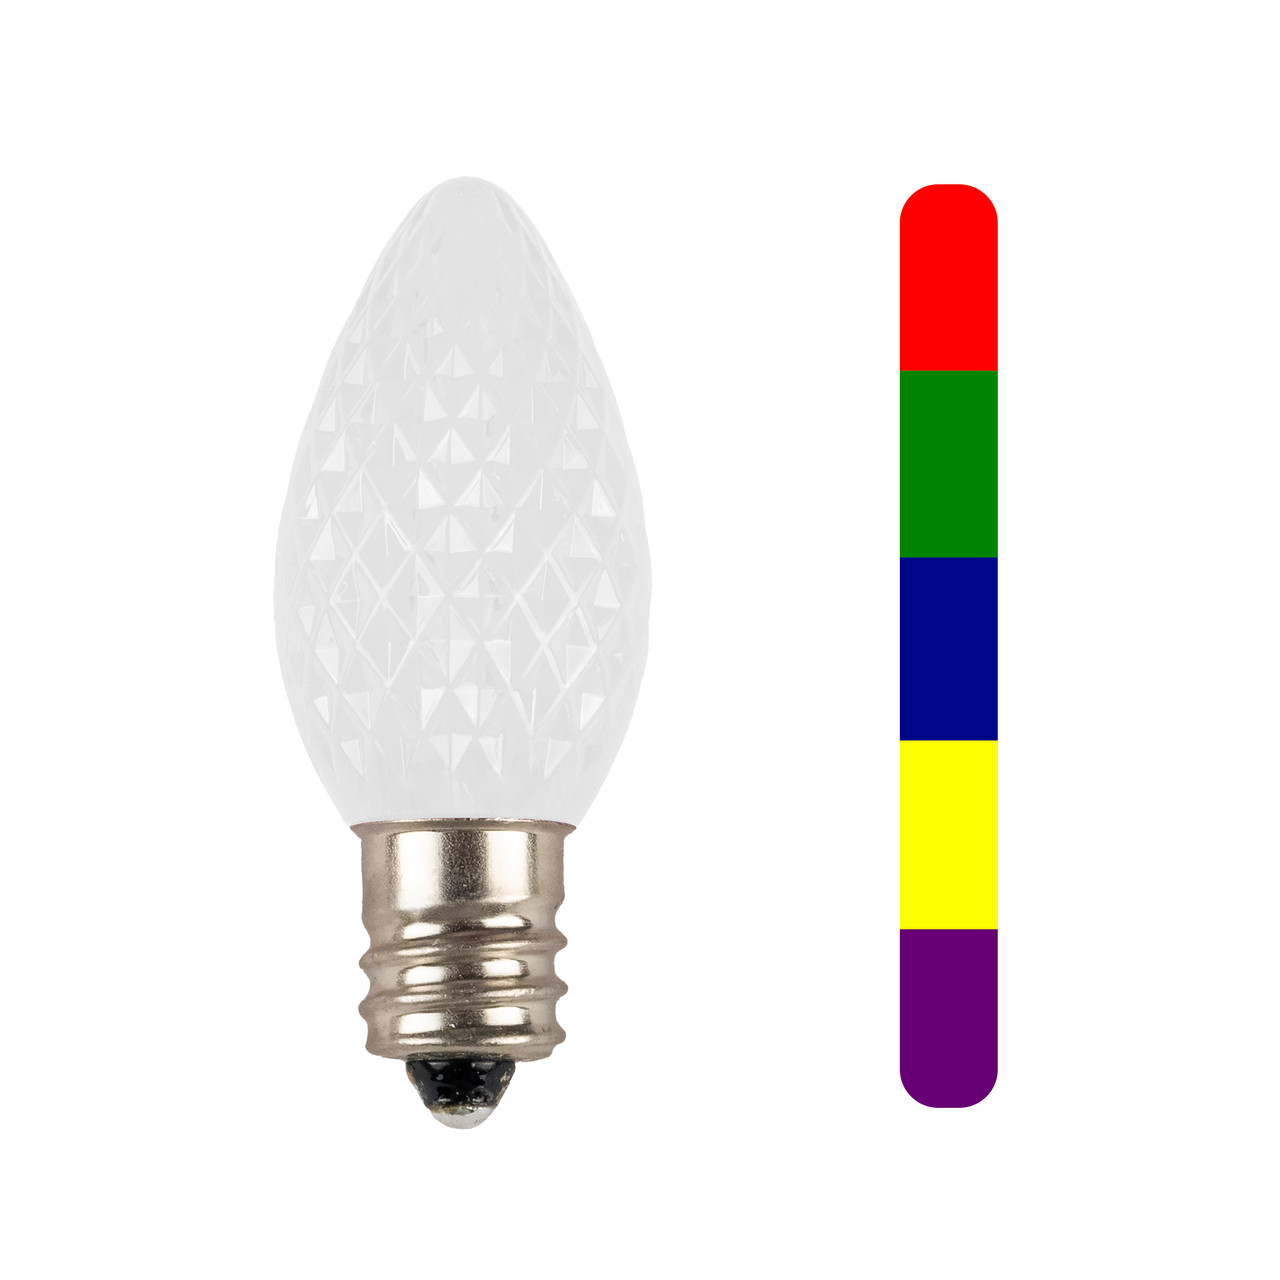 C7 Smd Slow Change Led Replacement Bulb Multi